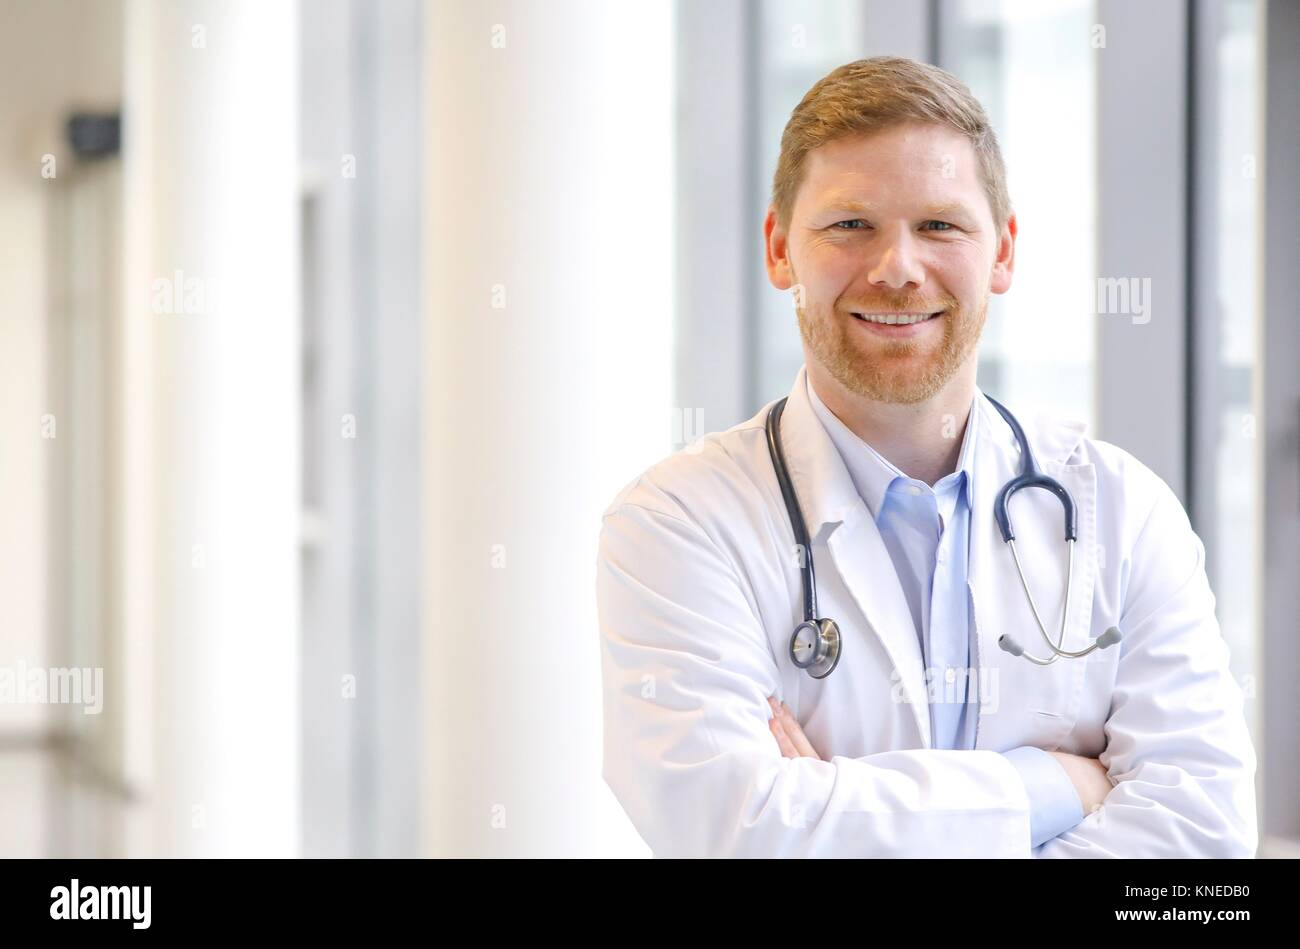 Doctor in corridor, Hospital - Stock Image